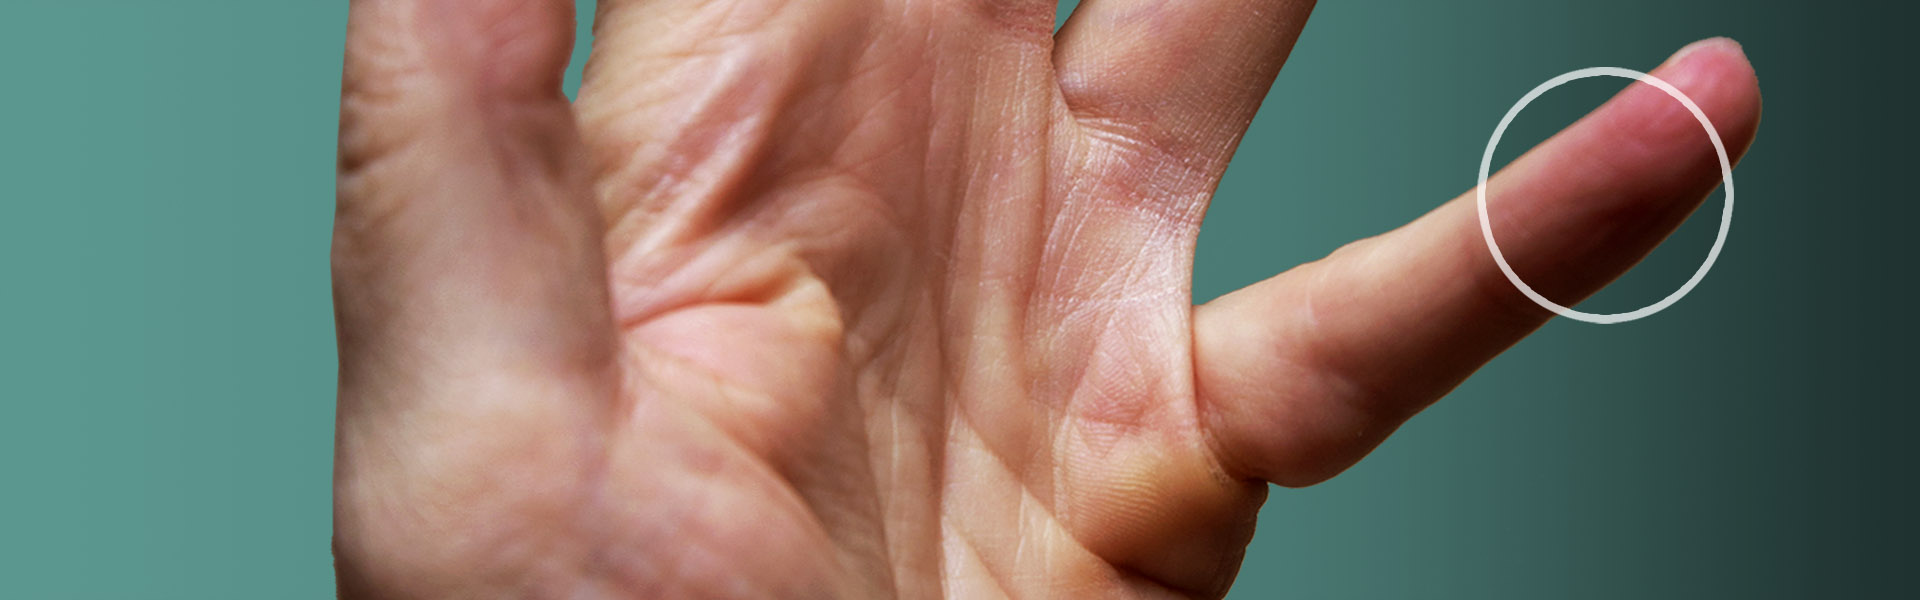 Photo of male hand requiring Xiaflex Protocol treatments for Dupuytren's contracture